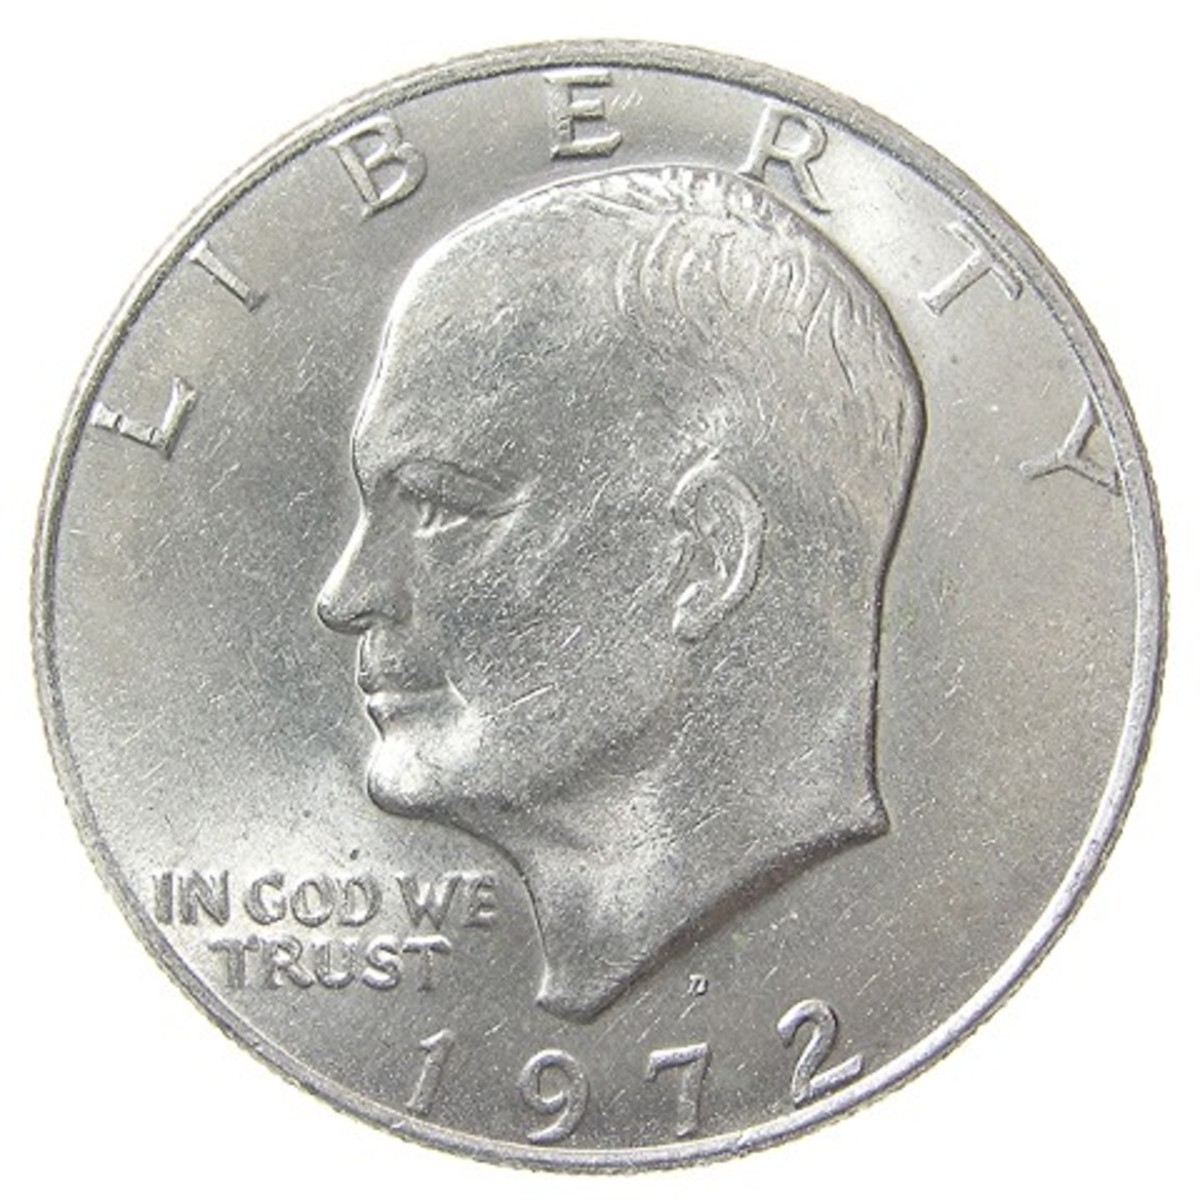 the-eisenhower-dollar-the-last-of-the-oversized-dollar-coins